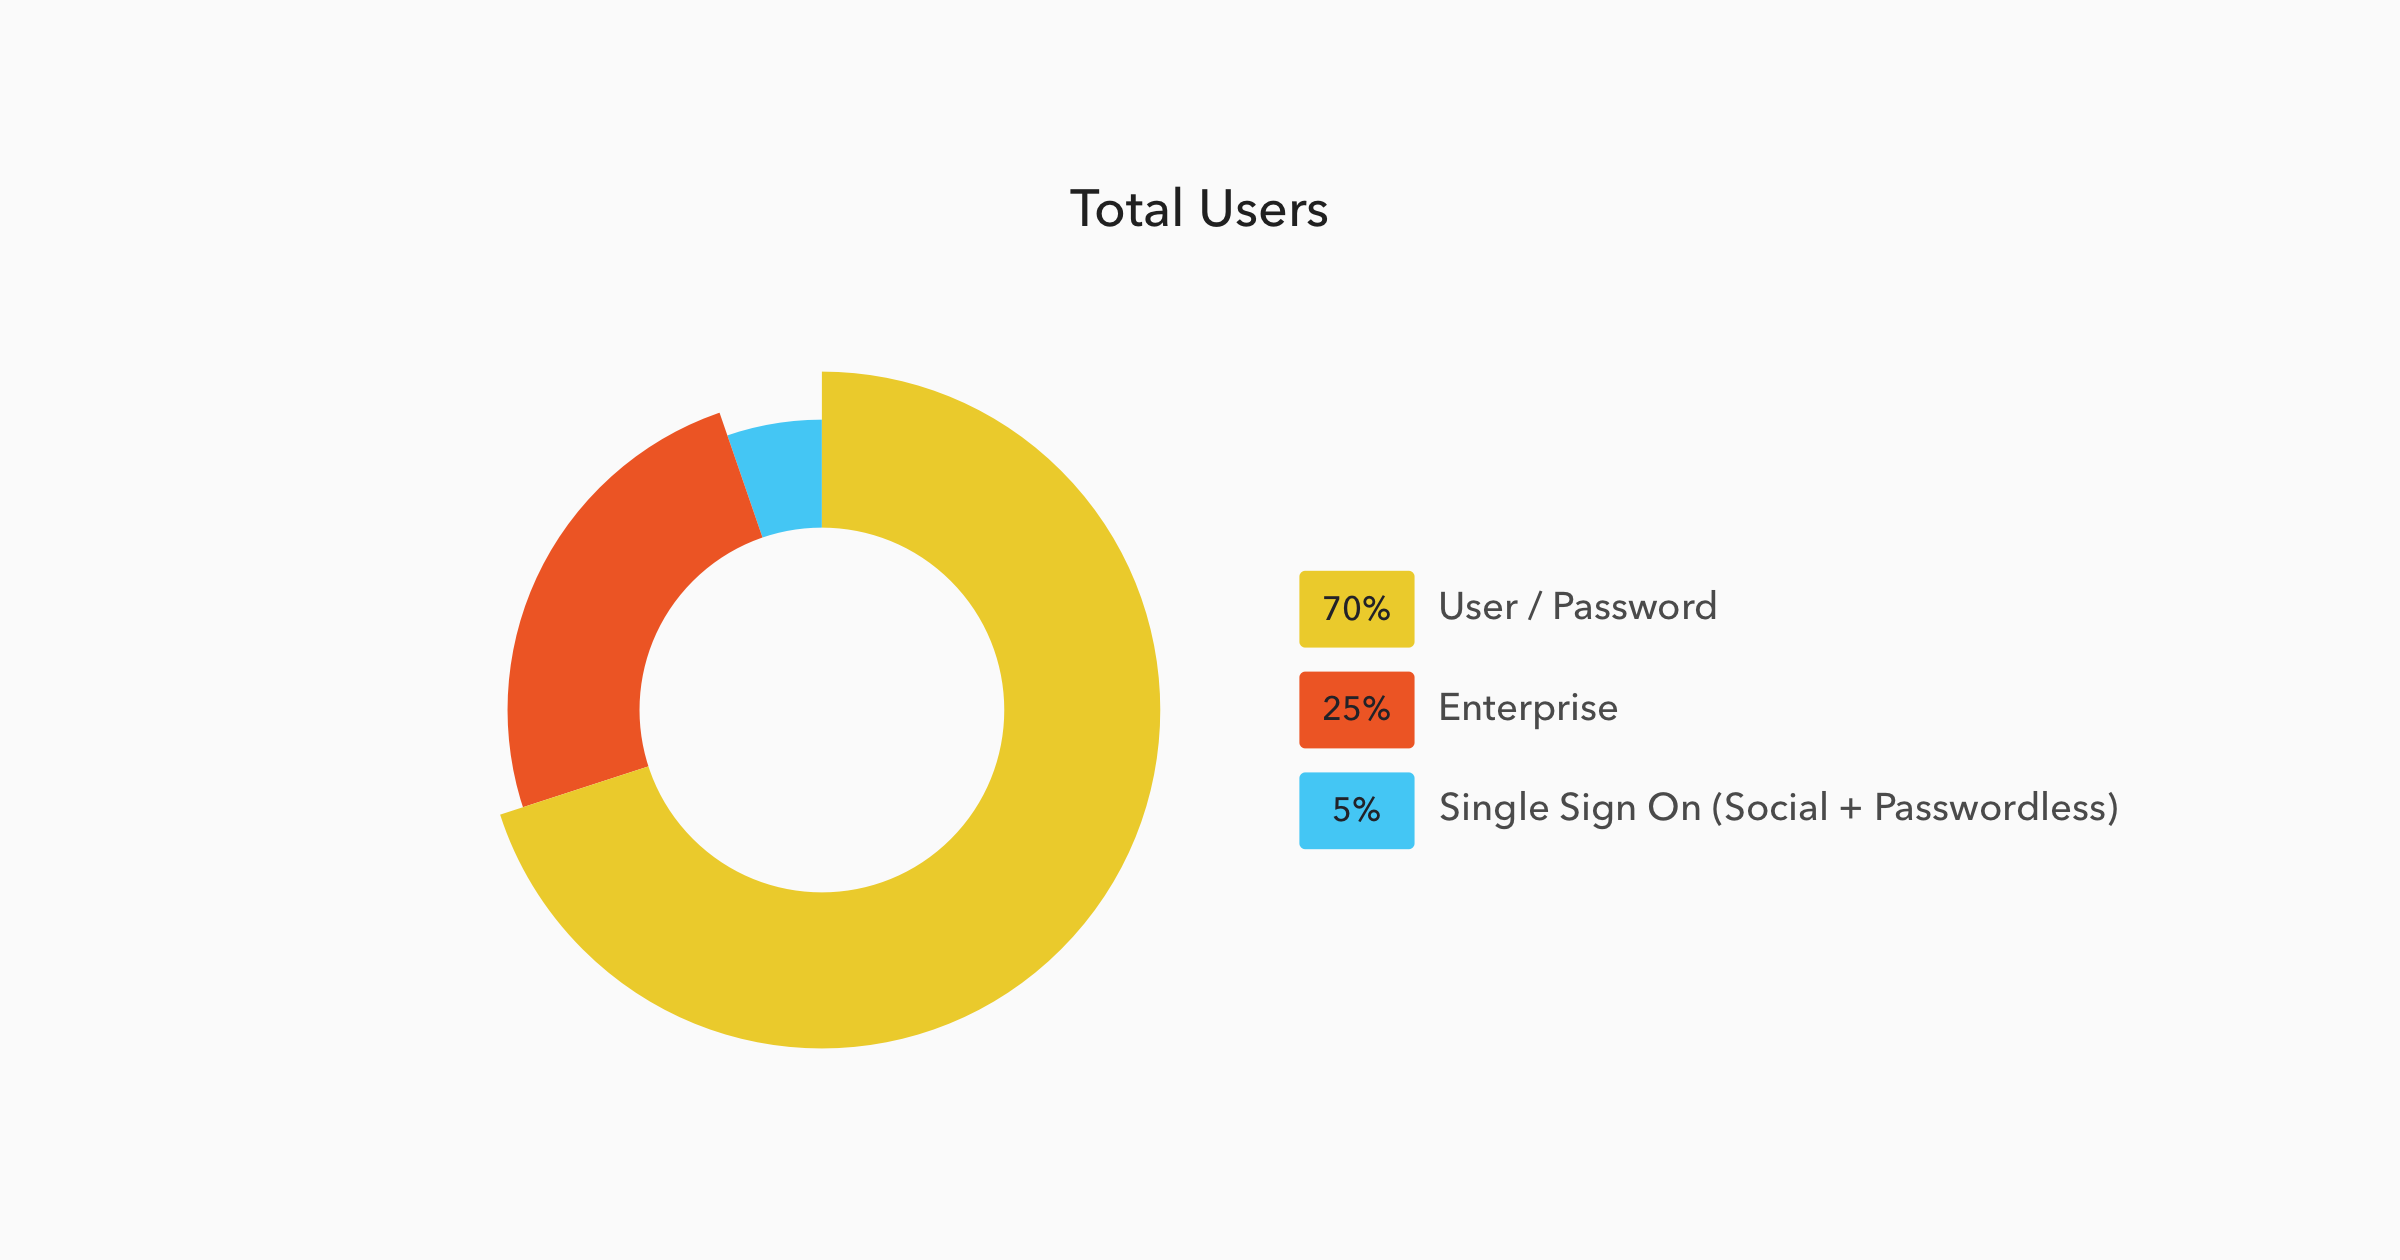 Total users